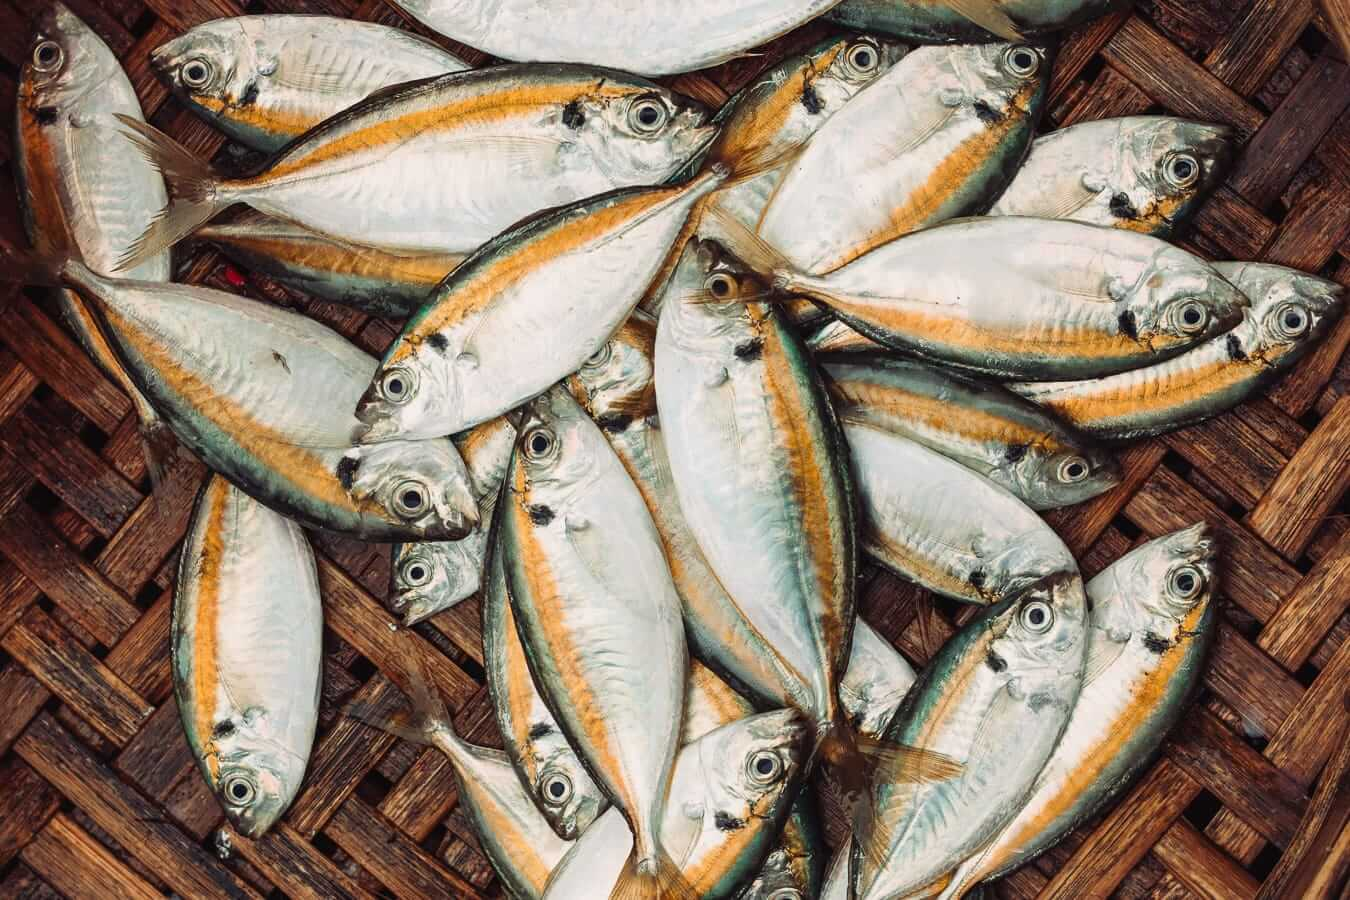 Fresh fish: Hoi An specialities